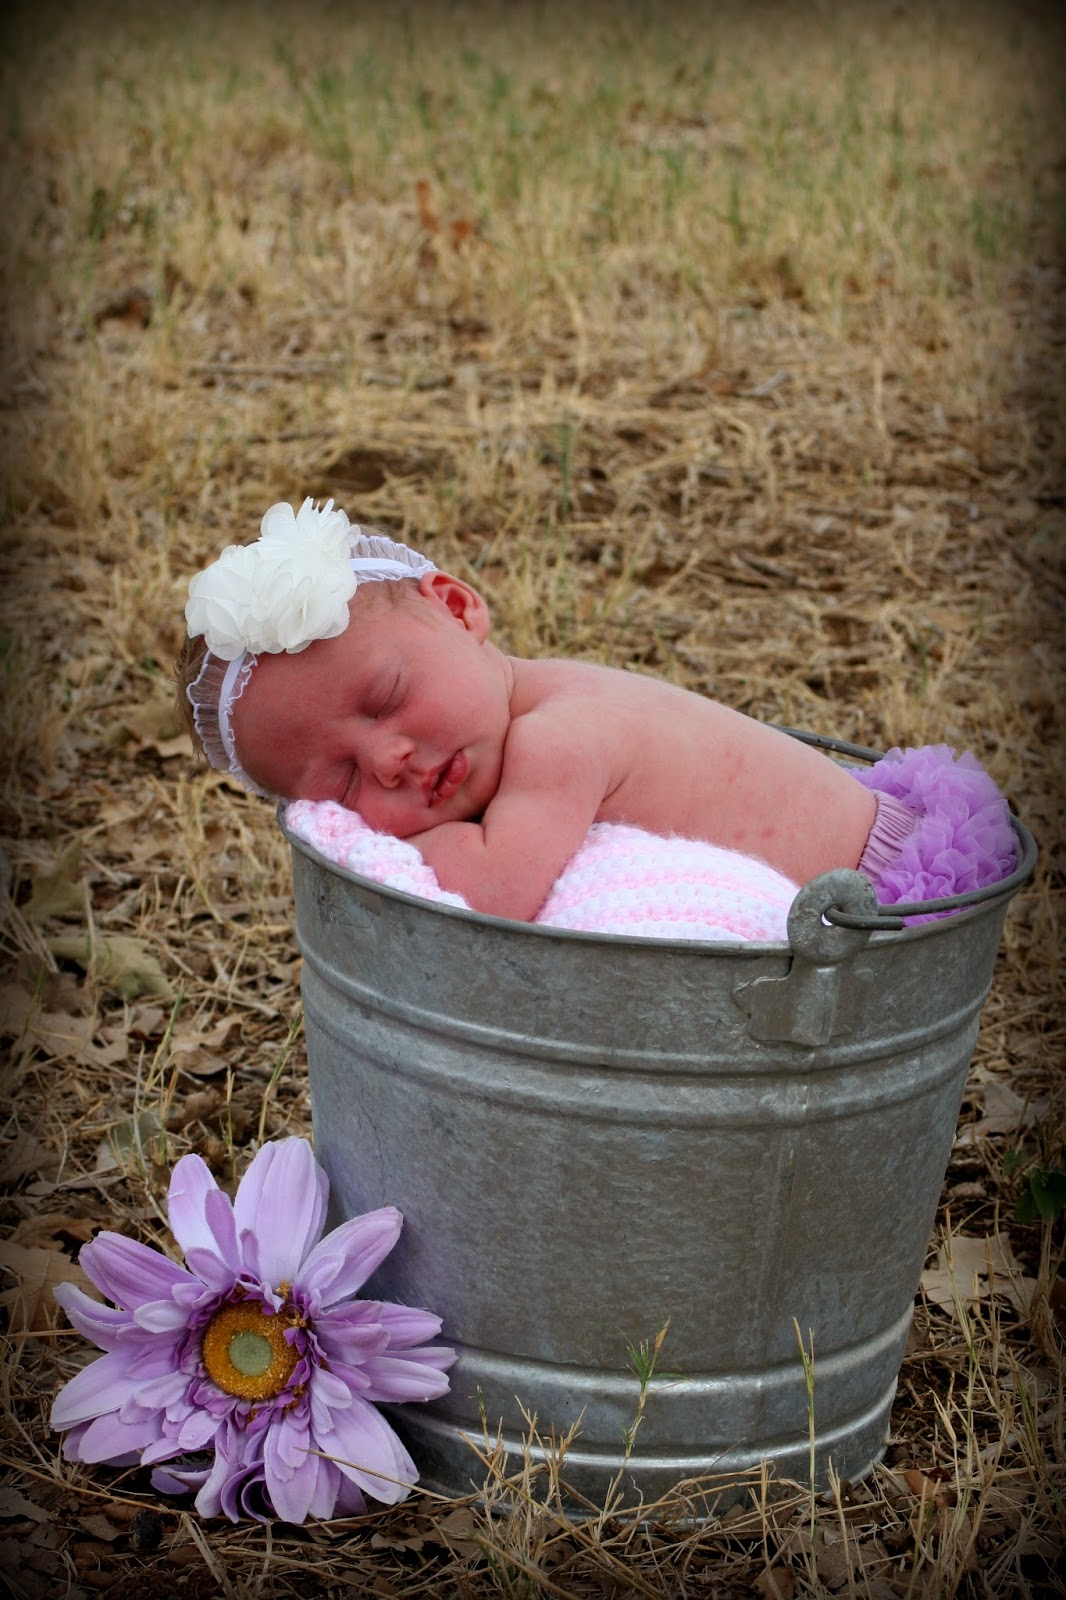 Our baby girl newborn photo shoot